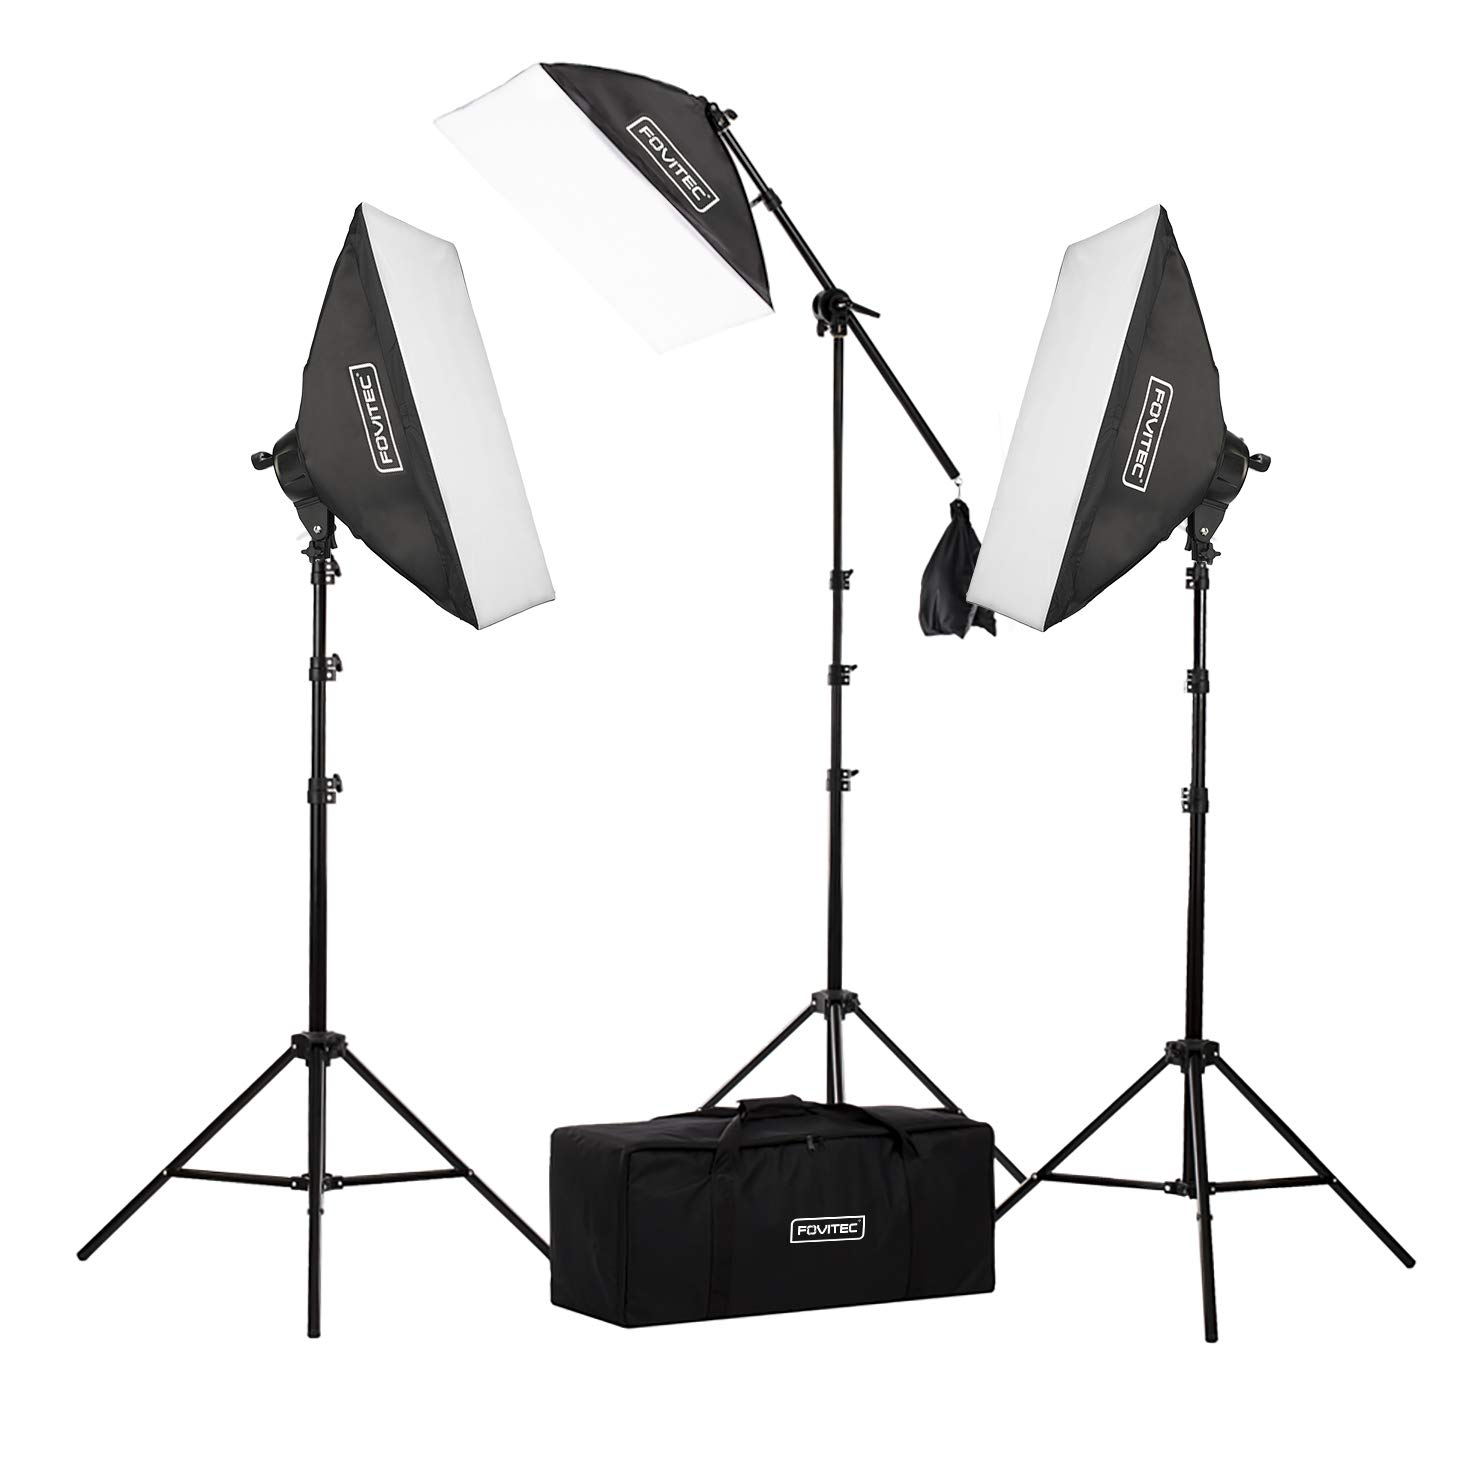 Fovitec - 3-Light 2500W Fluorescent Lighting Kit for Photo & Video with 20''x28'' Softboxes, stands, Boom Stand, & Carry Case by Fovitec